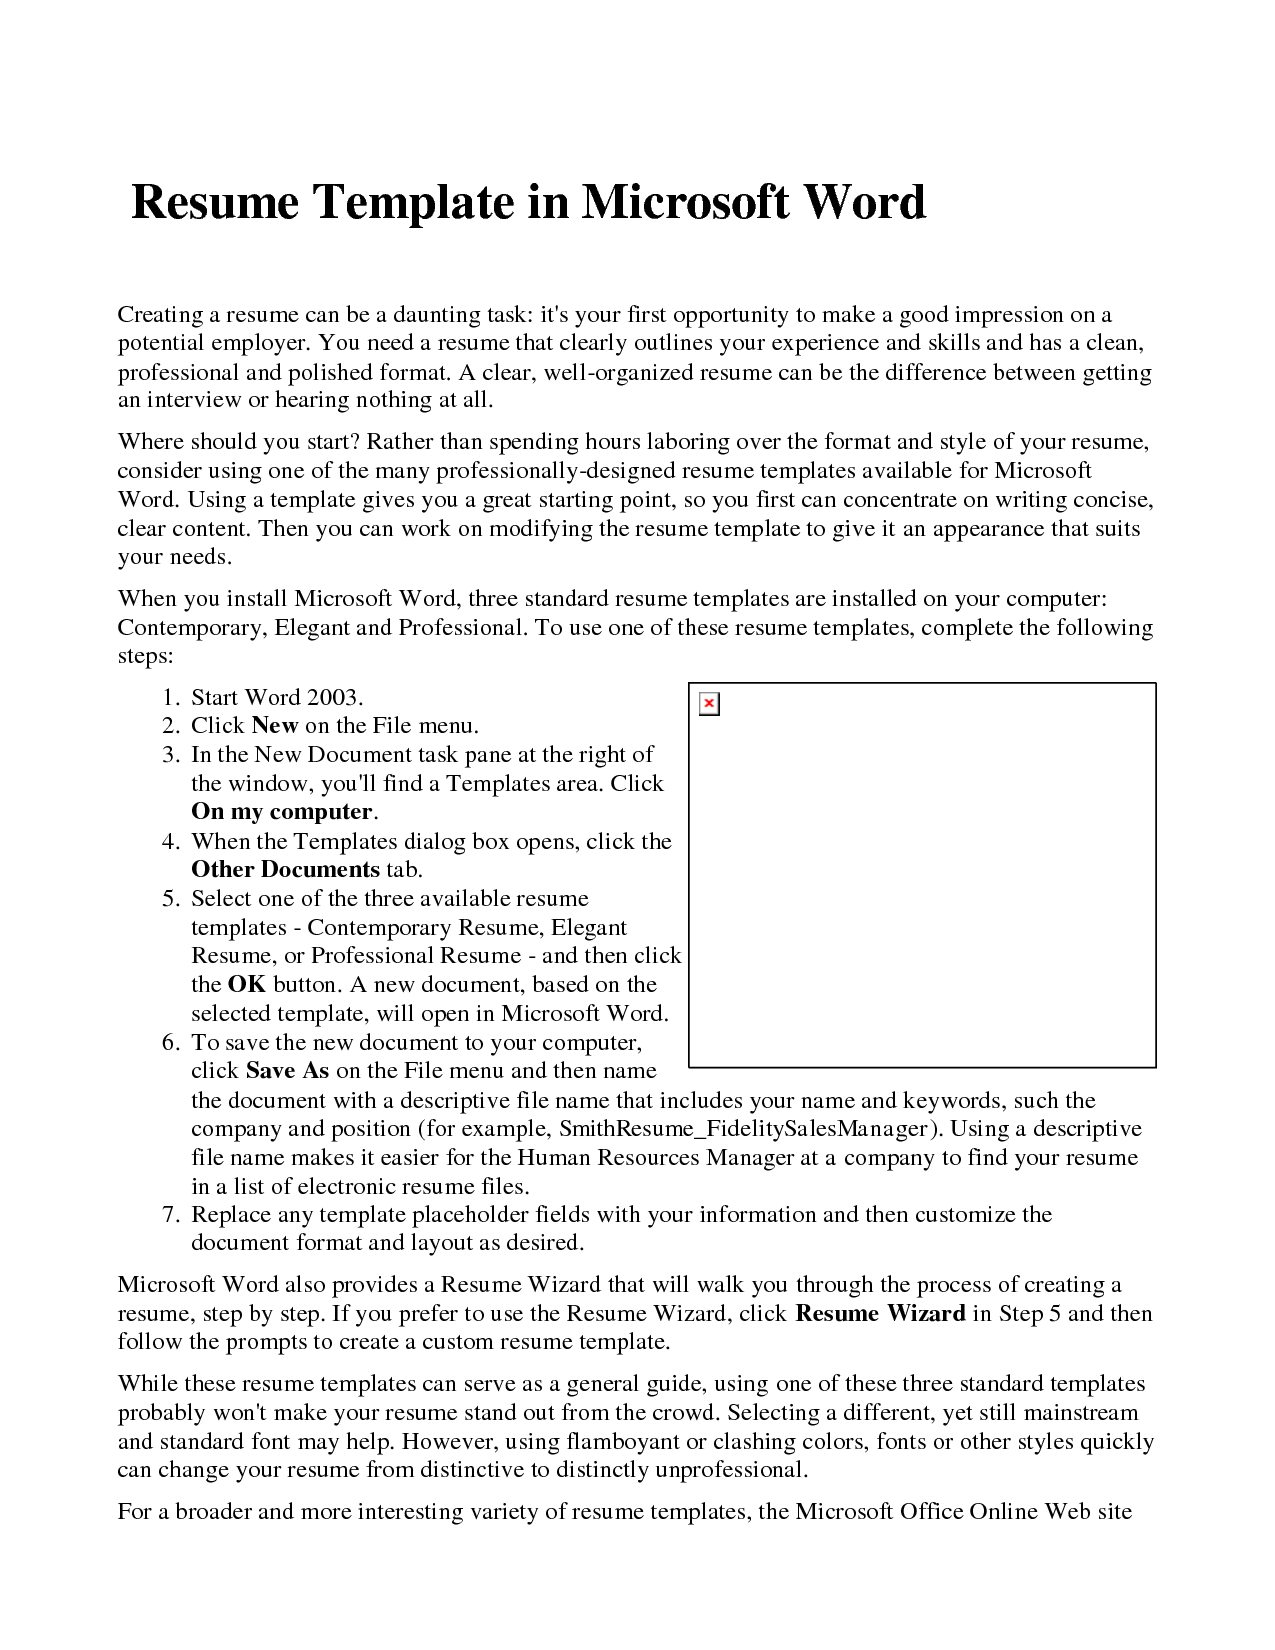 Free Resume Templates Word 2010 Beauteous Resume Templates Microsoft Word  Httpwwwresumecareer